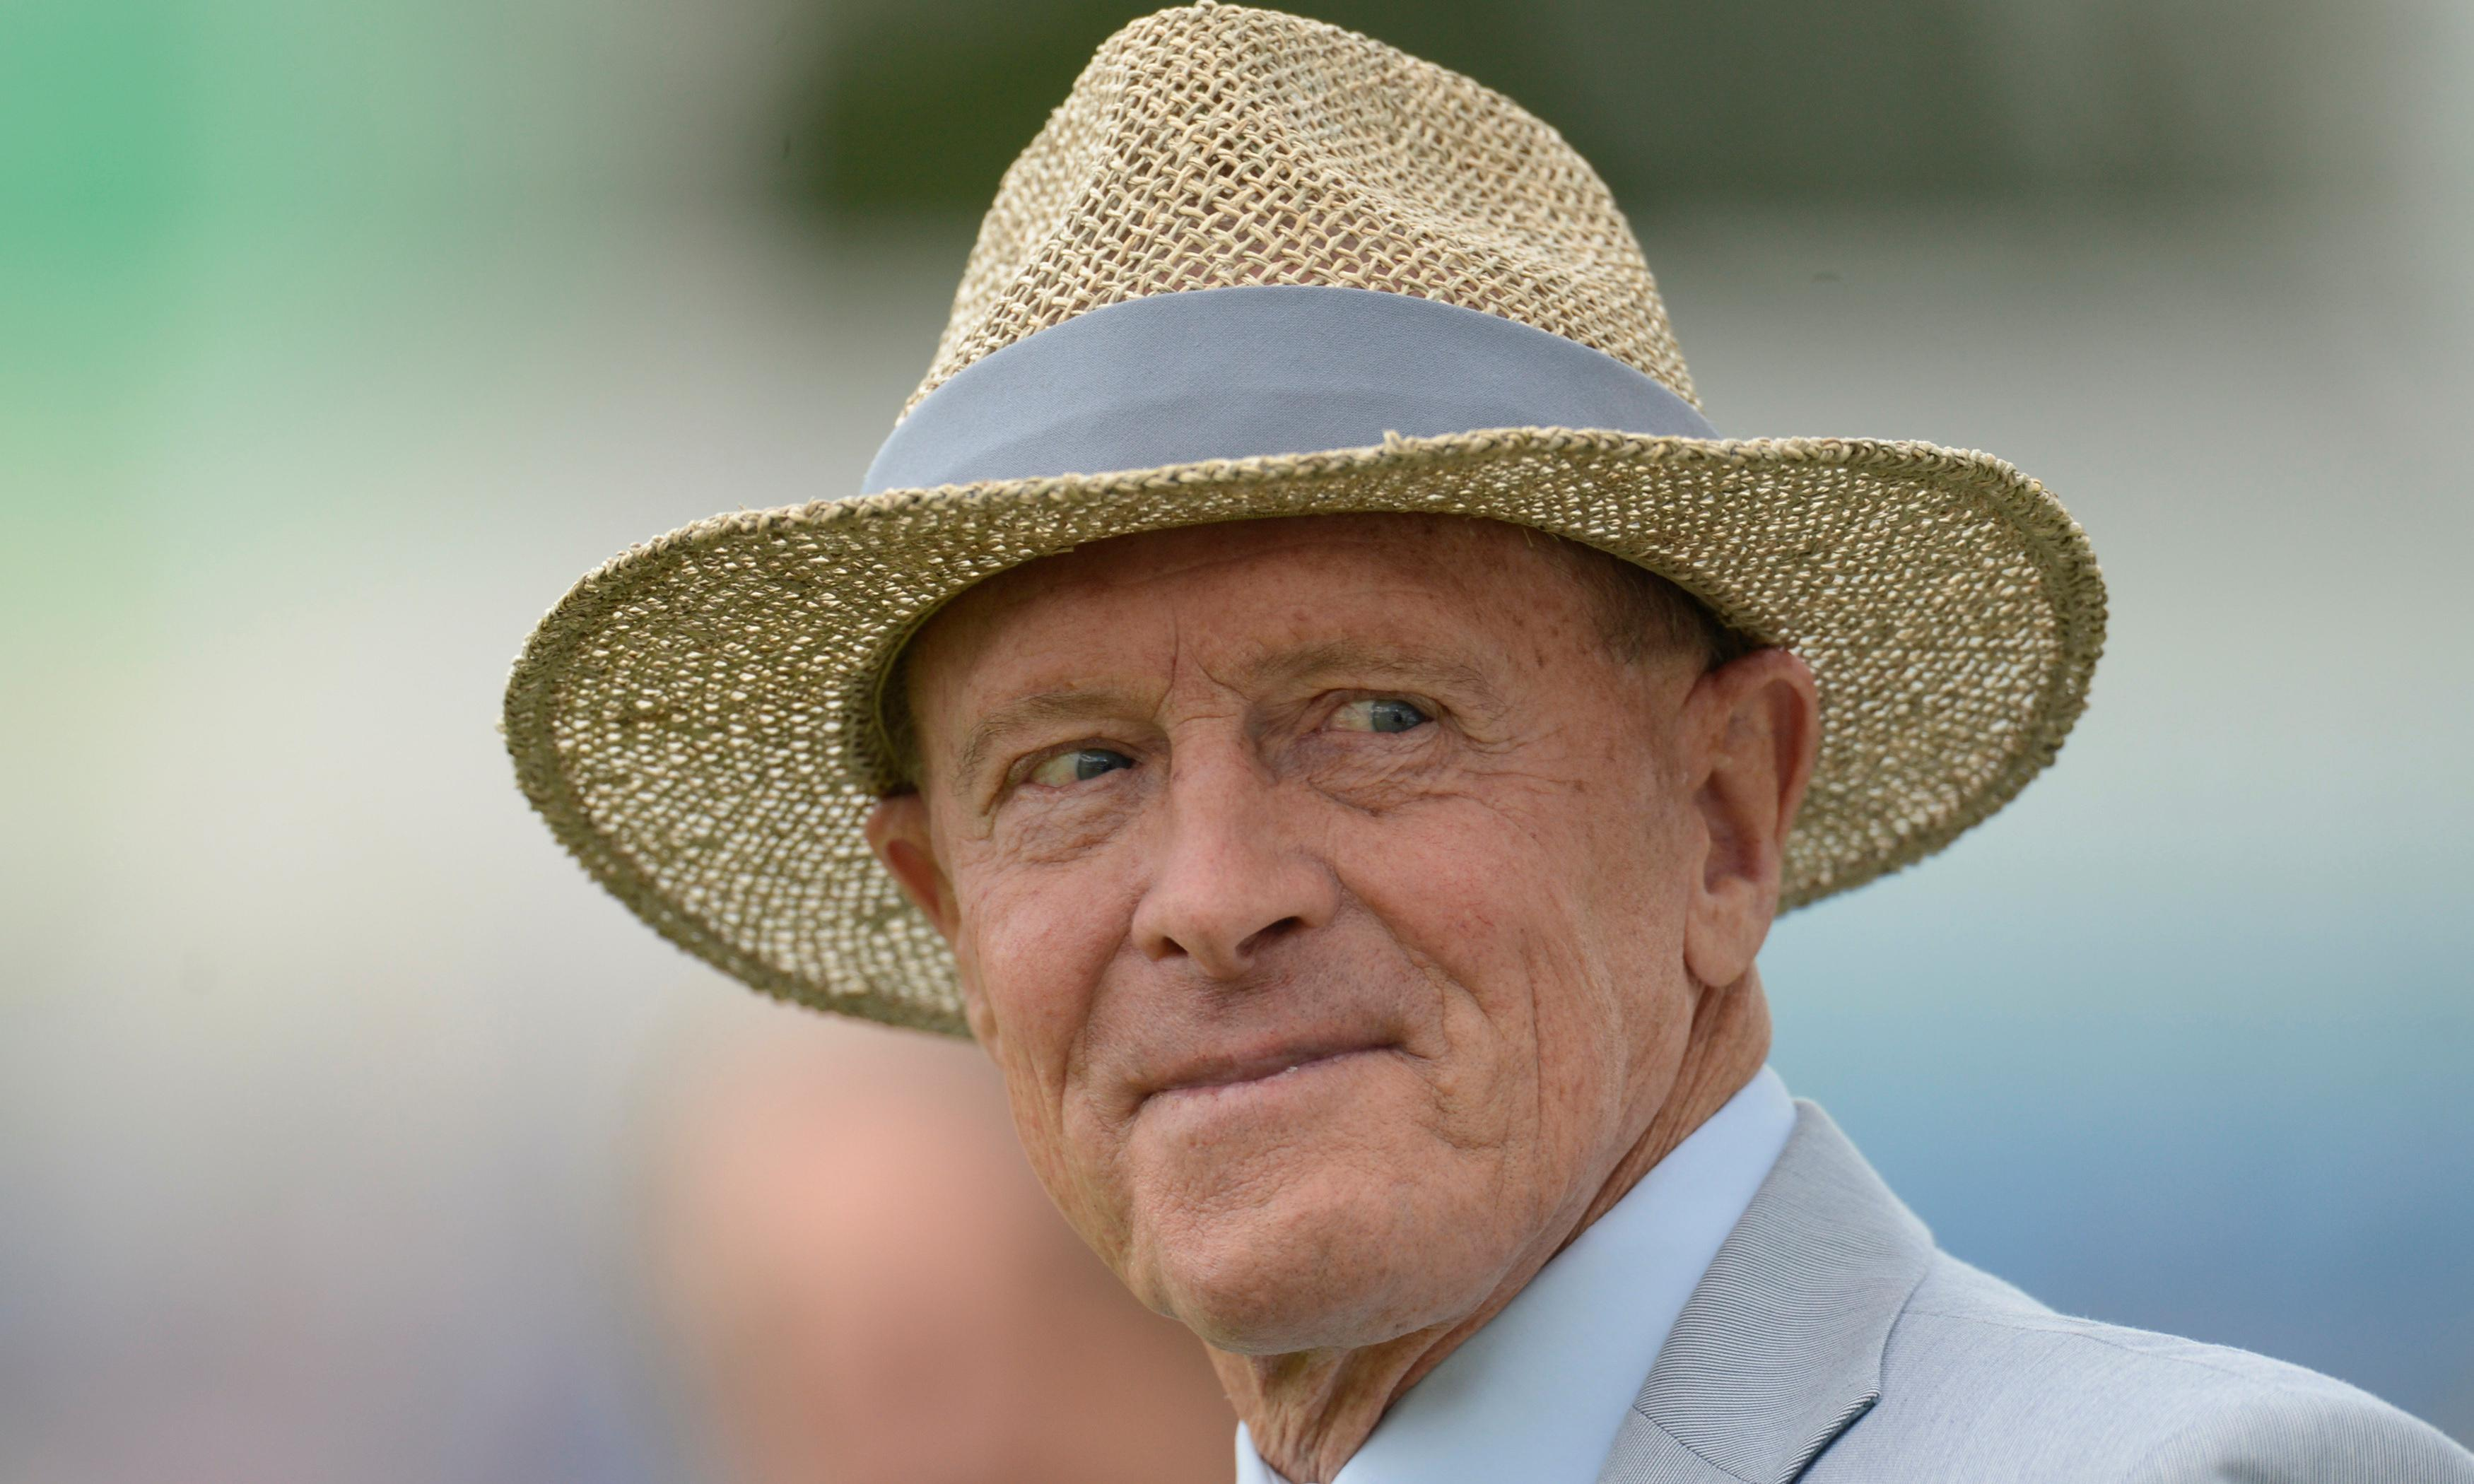 Geoffrey Boycott knighted in May's honours despite assault conviction